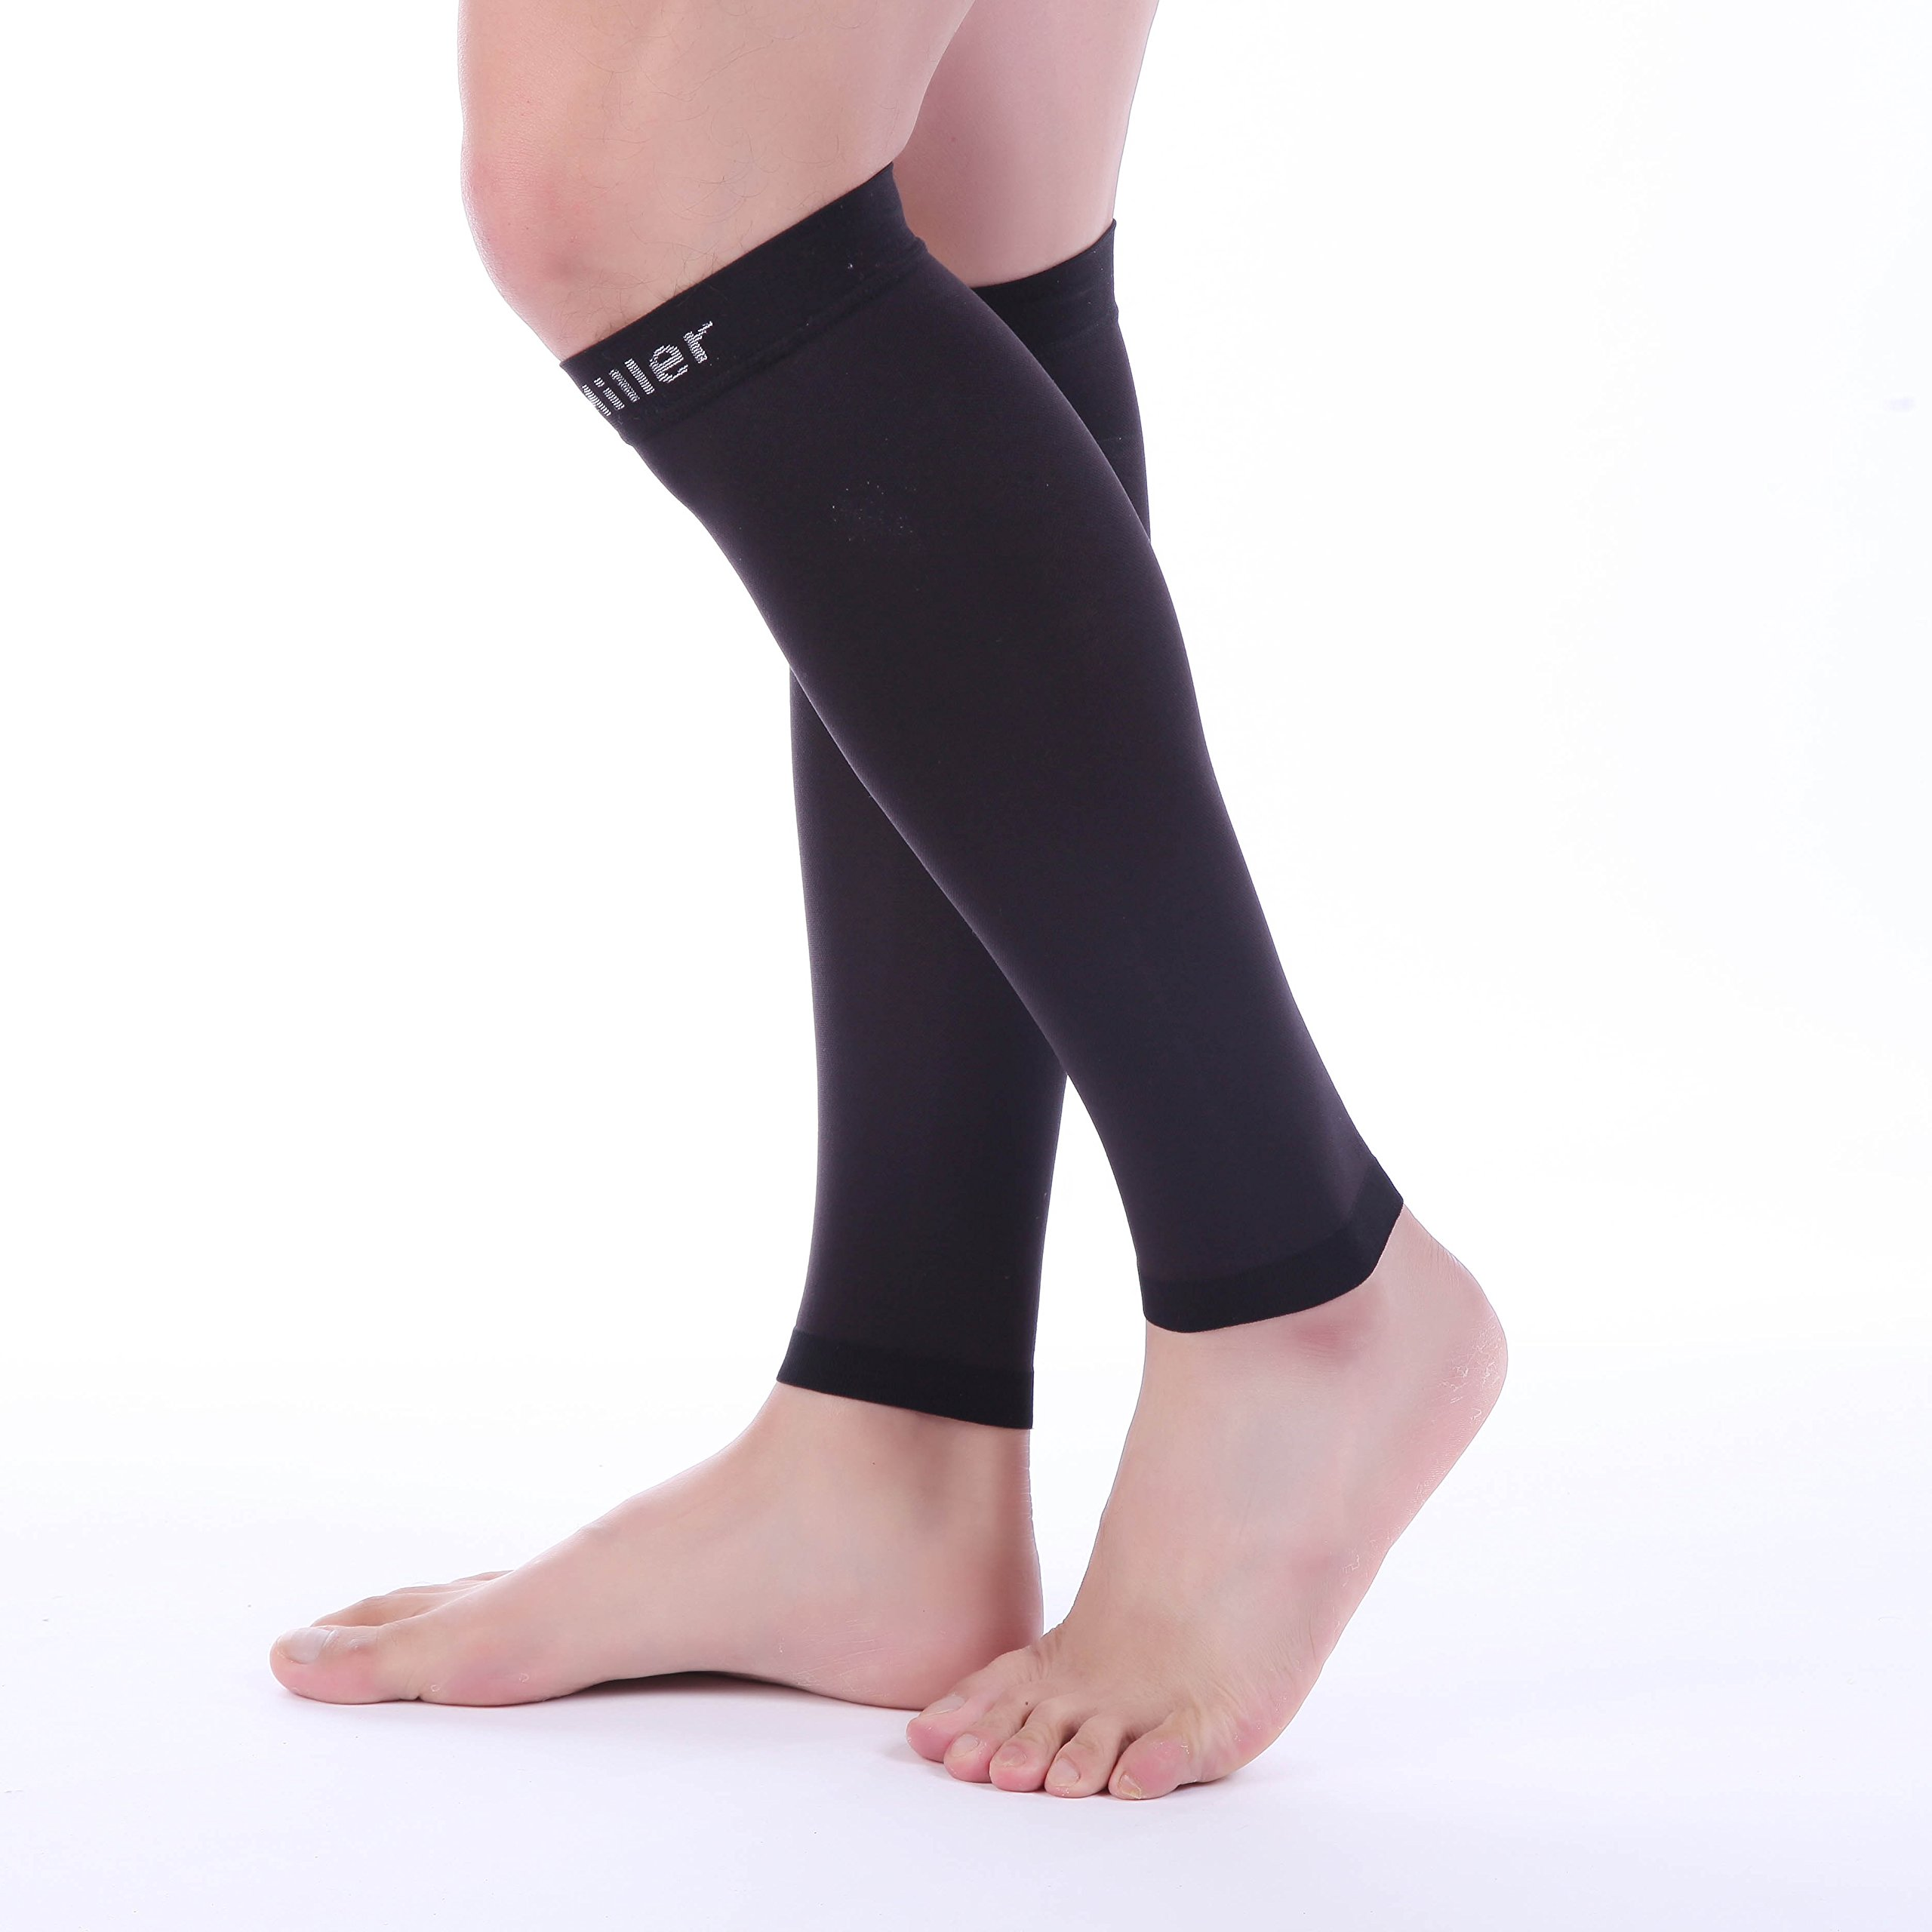 Doc Miller Premium Calf Compression Sleeve 1 Pair 20-30mmHg Strong Calf Support Graduated Pressure for Sports Running Muscle Recovery Shin Splints Varicose Veins (Black, 2-Pack, Small) by Doc Miller (Image #9)